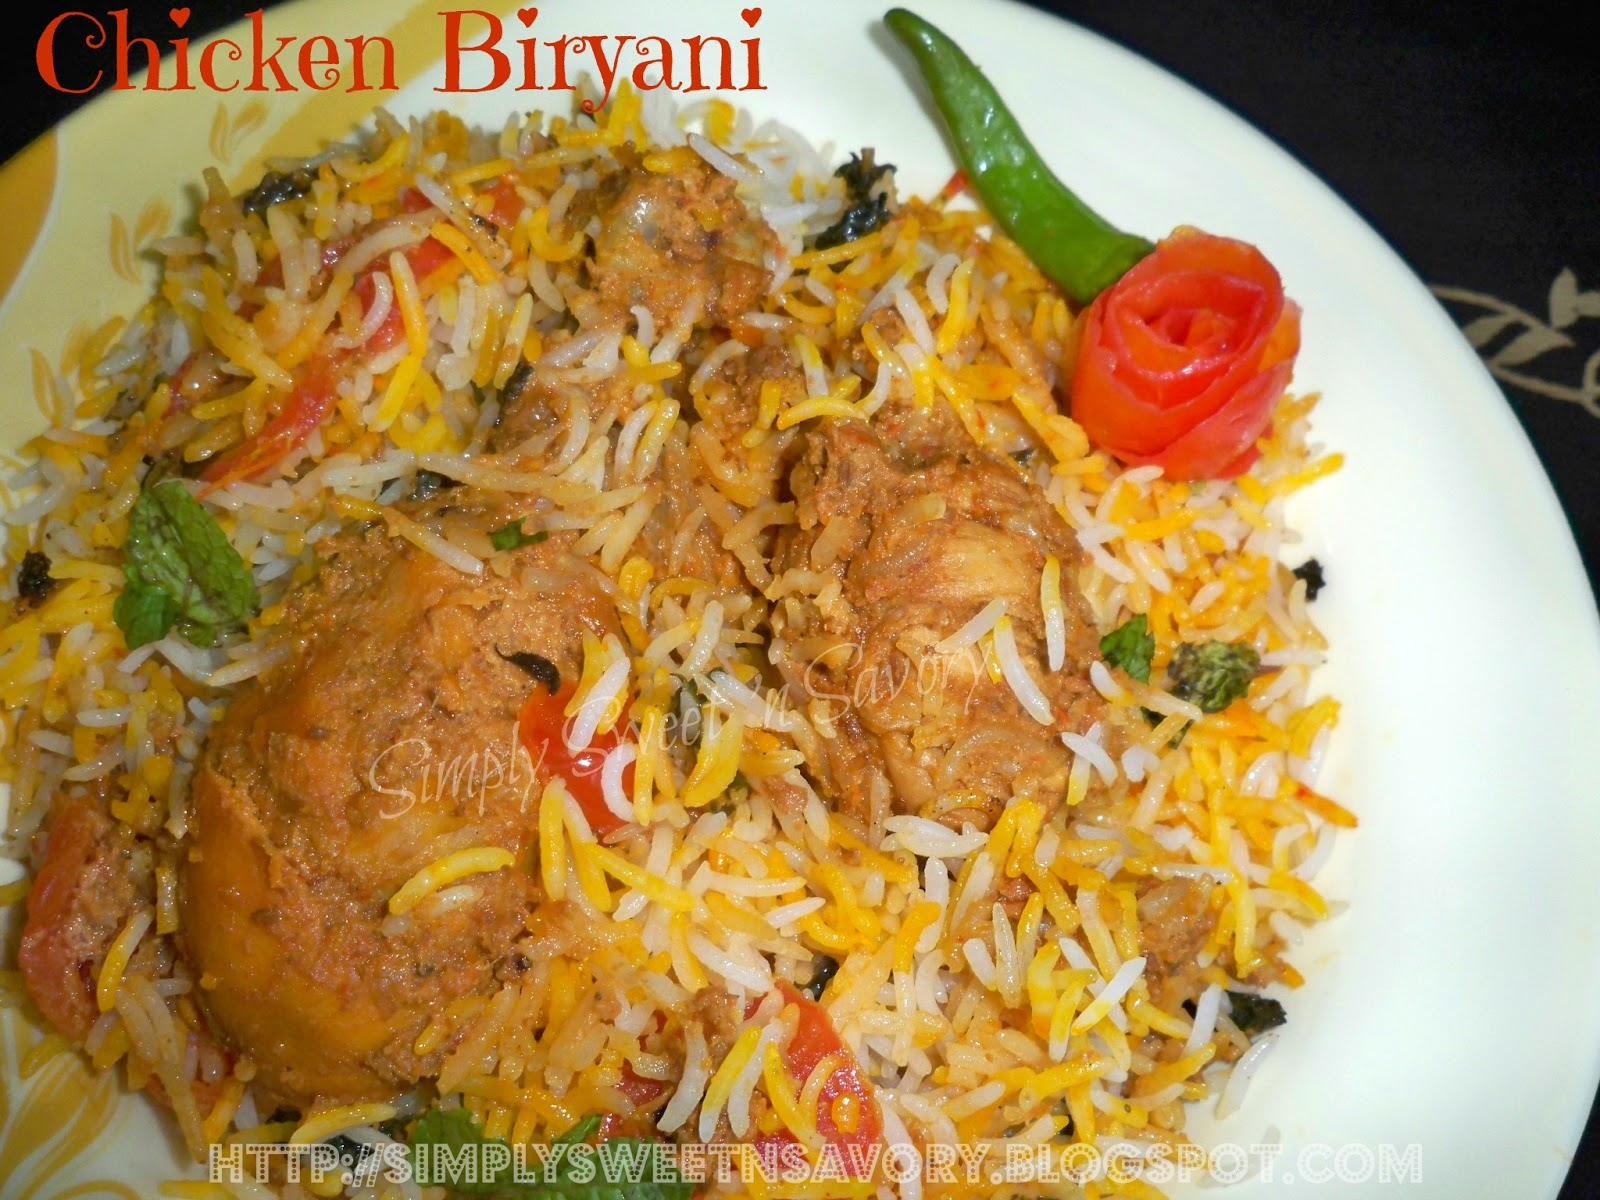 Cloves Simply Sweet N Savory Chicken Biryani